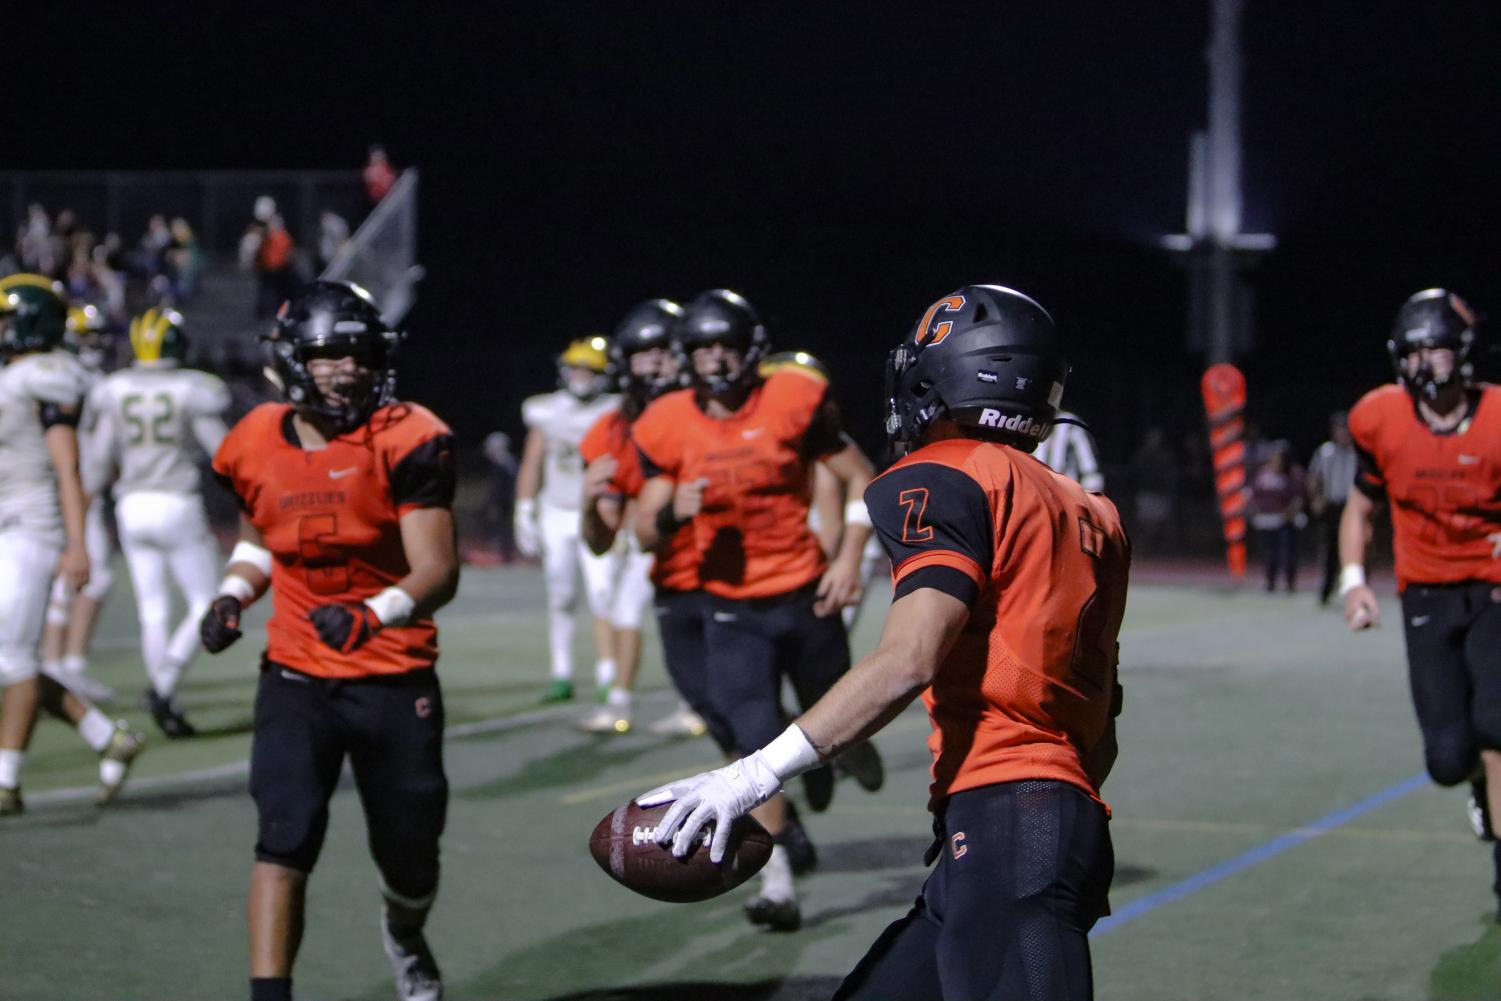 Above, senior Belal Alatasi, right, gets ready to celebrate a touchdown with his unrushing teammates. Unfortunately, the Grizzlies lost the homecoming game on October 25 to San Ramon Valley, 24-21, in the closing seconds of the game.